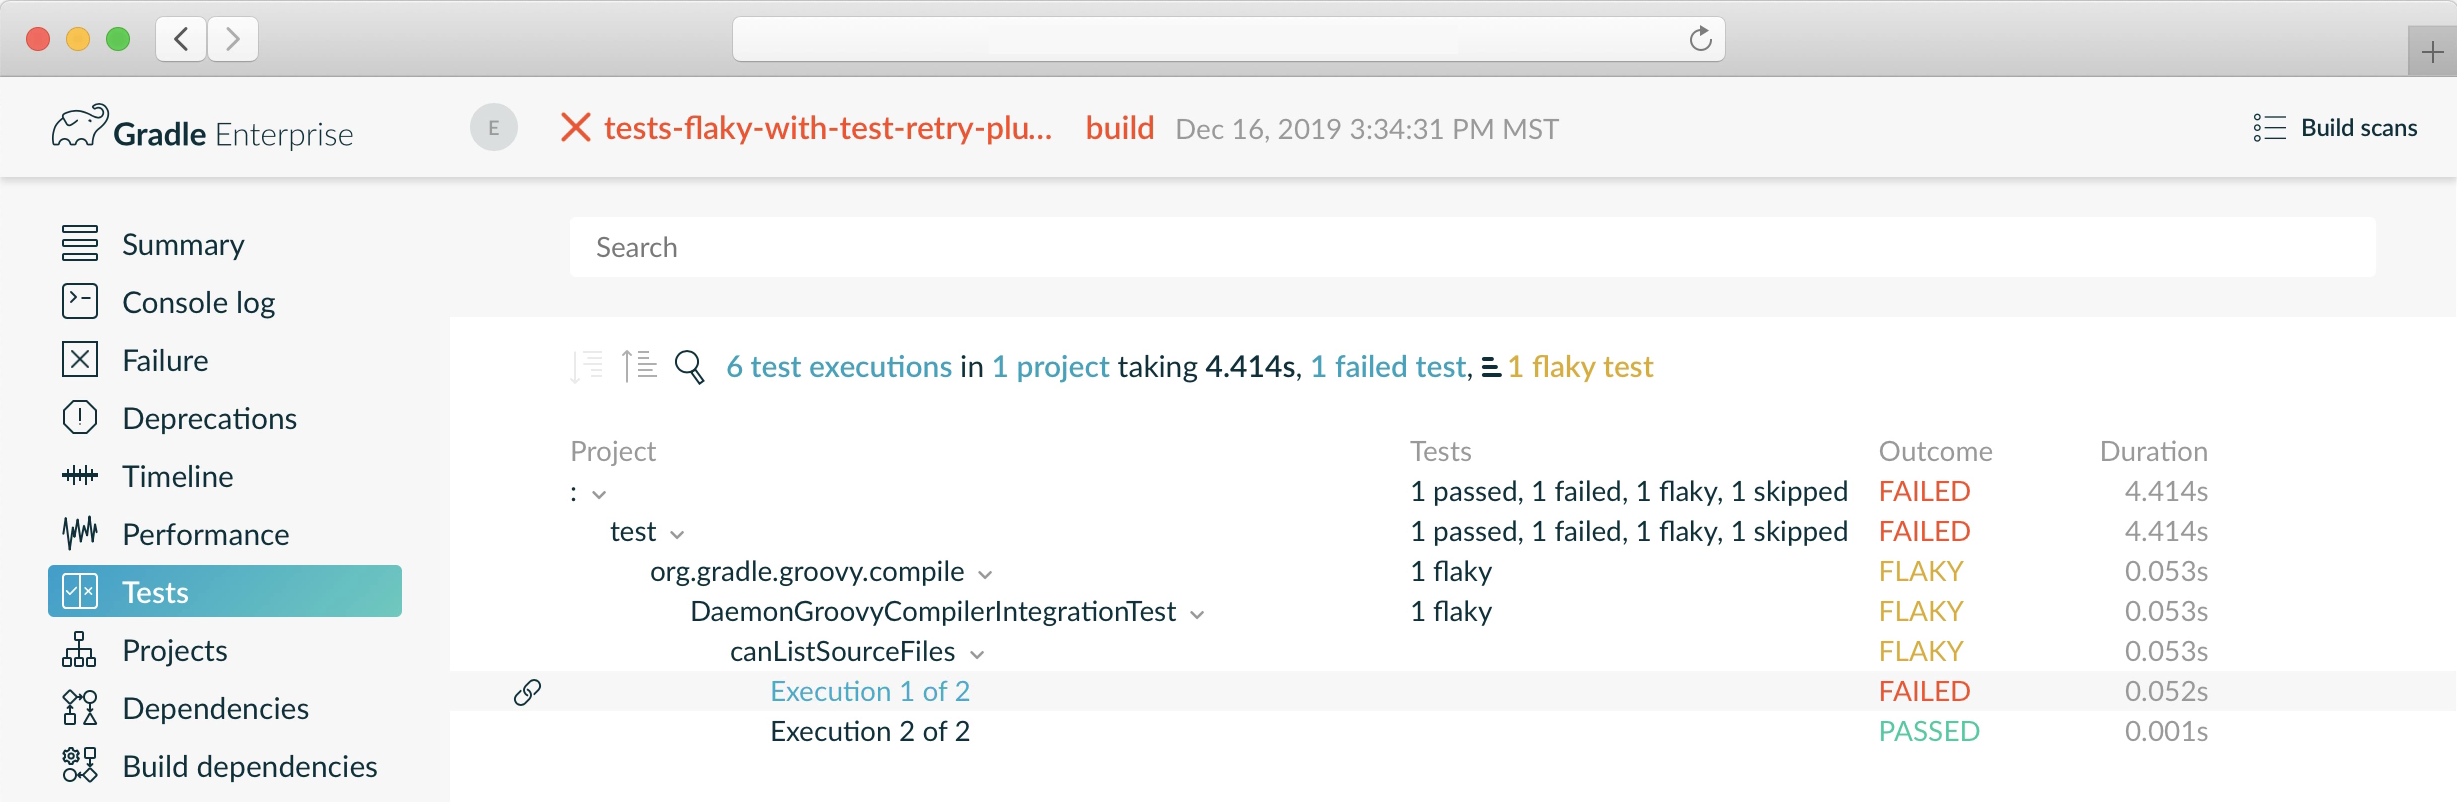 Build Scan with flaky test